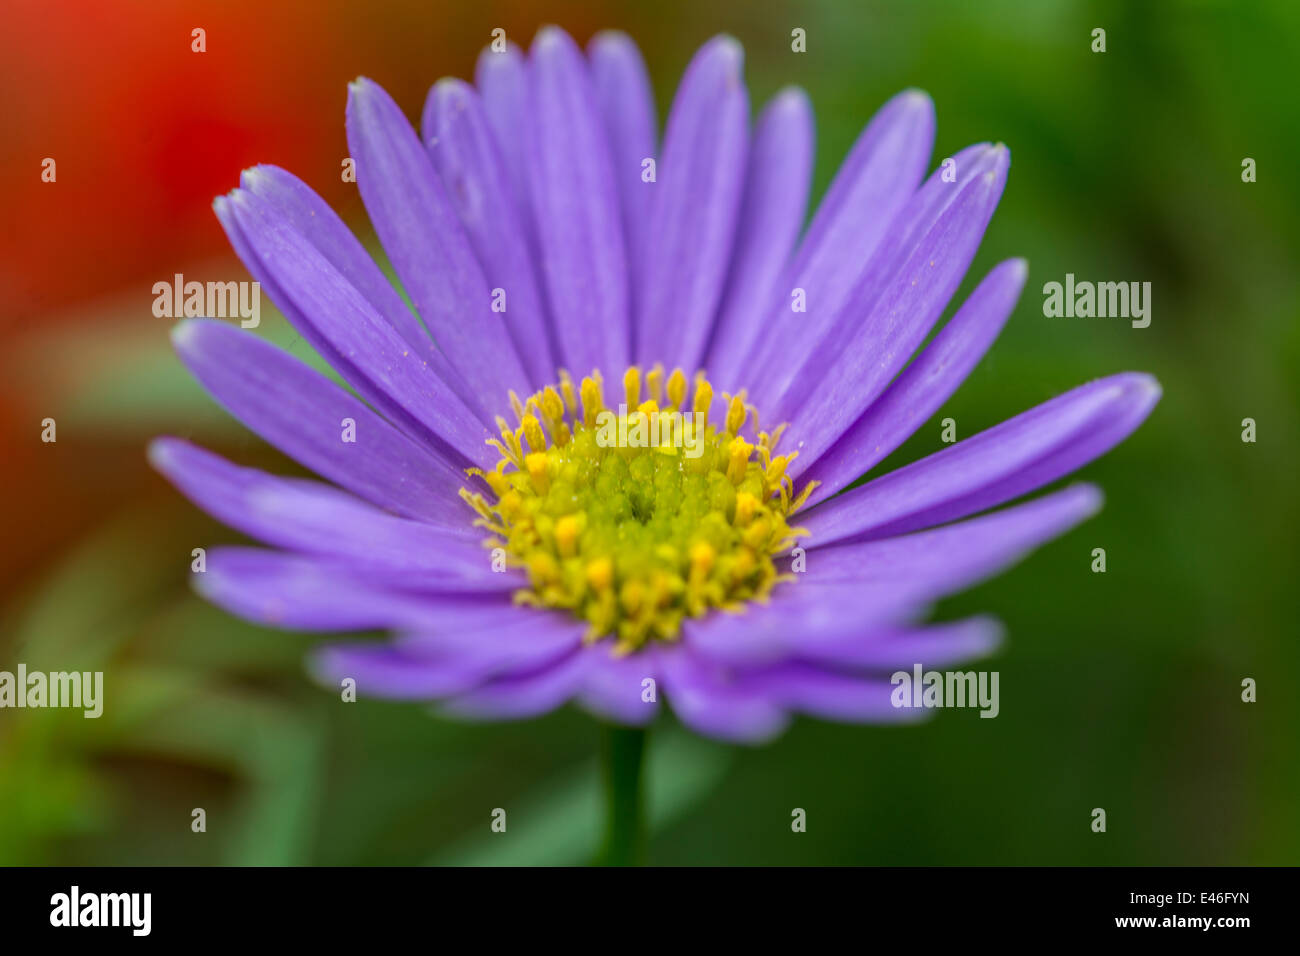 Close up view of the African daisy - Stock Image